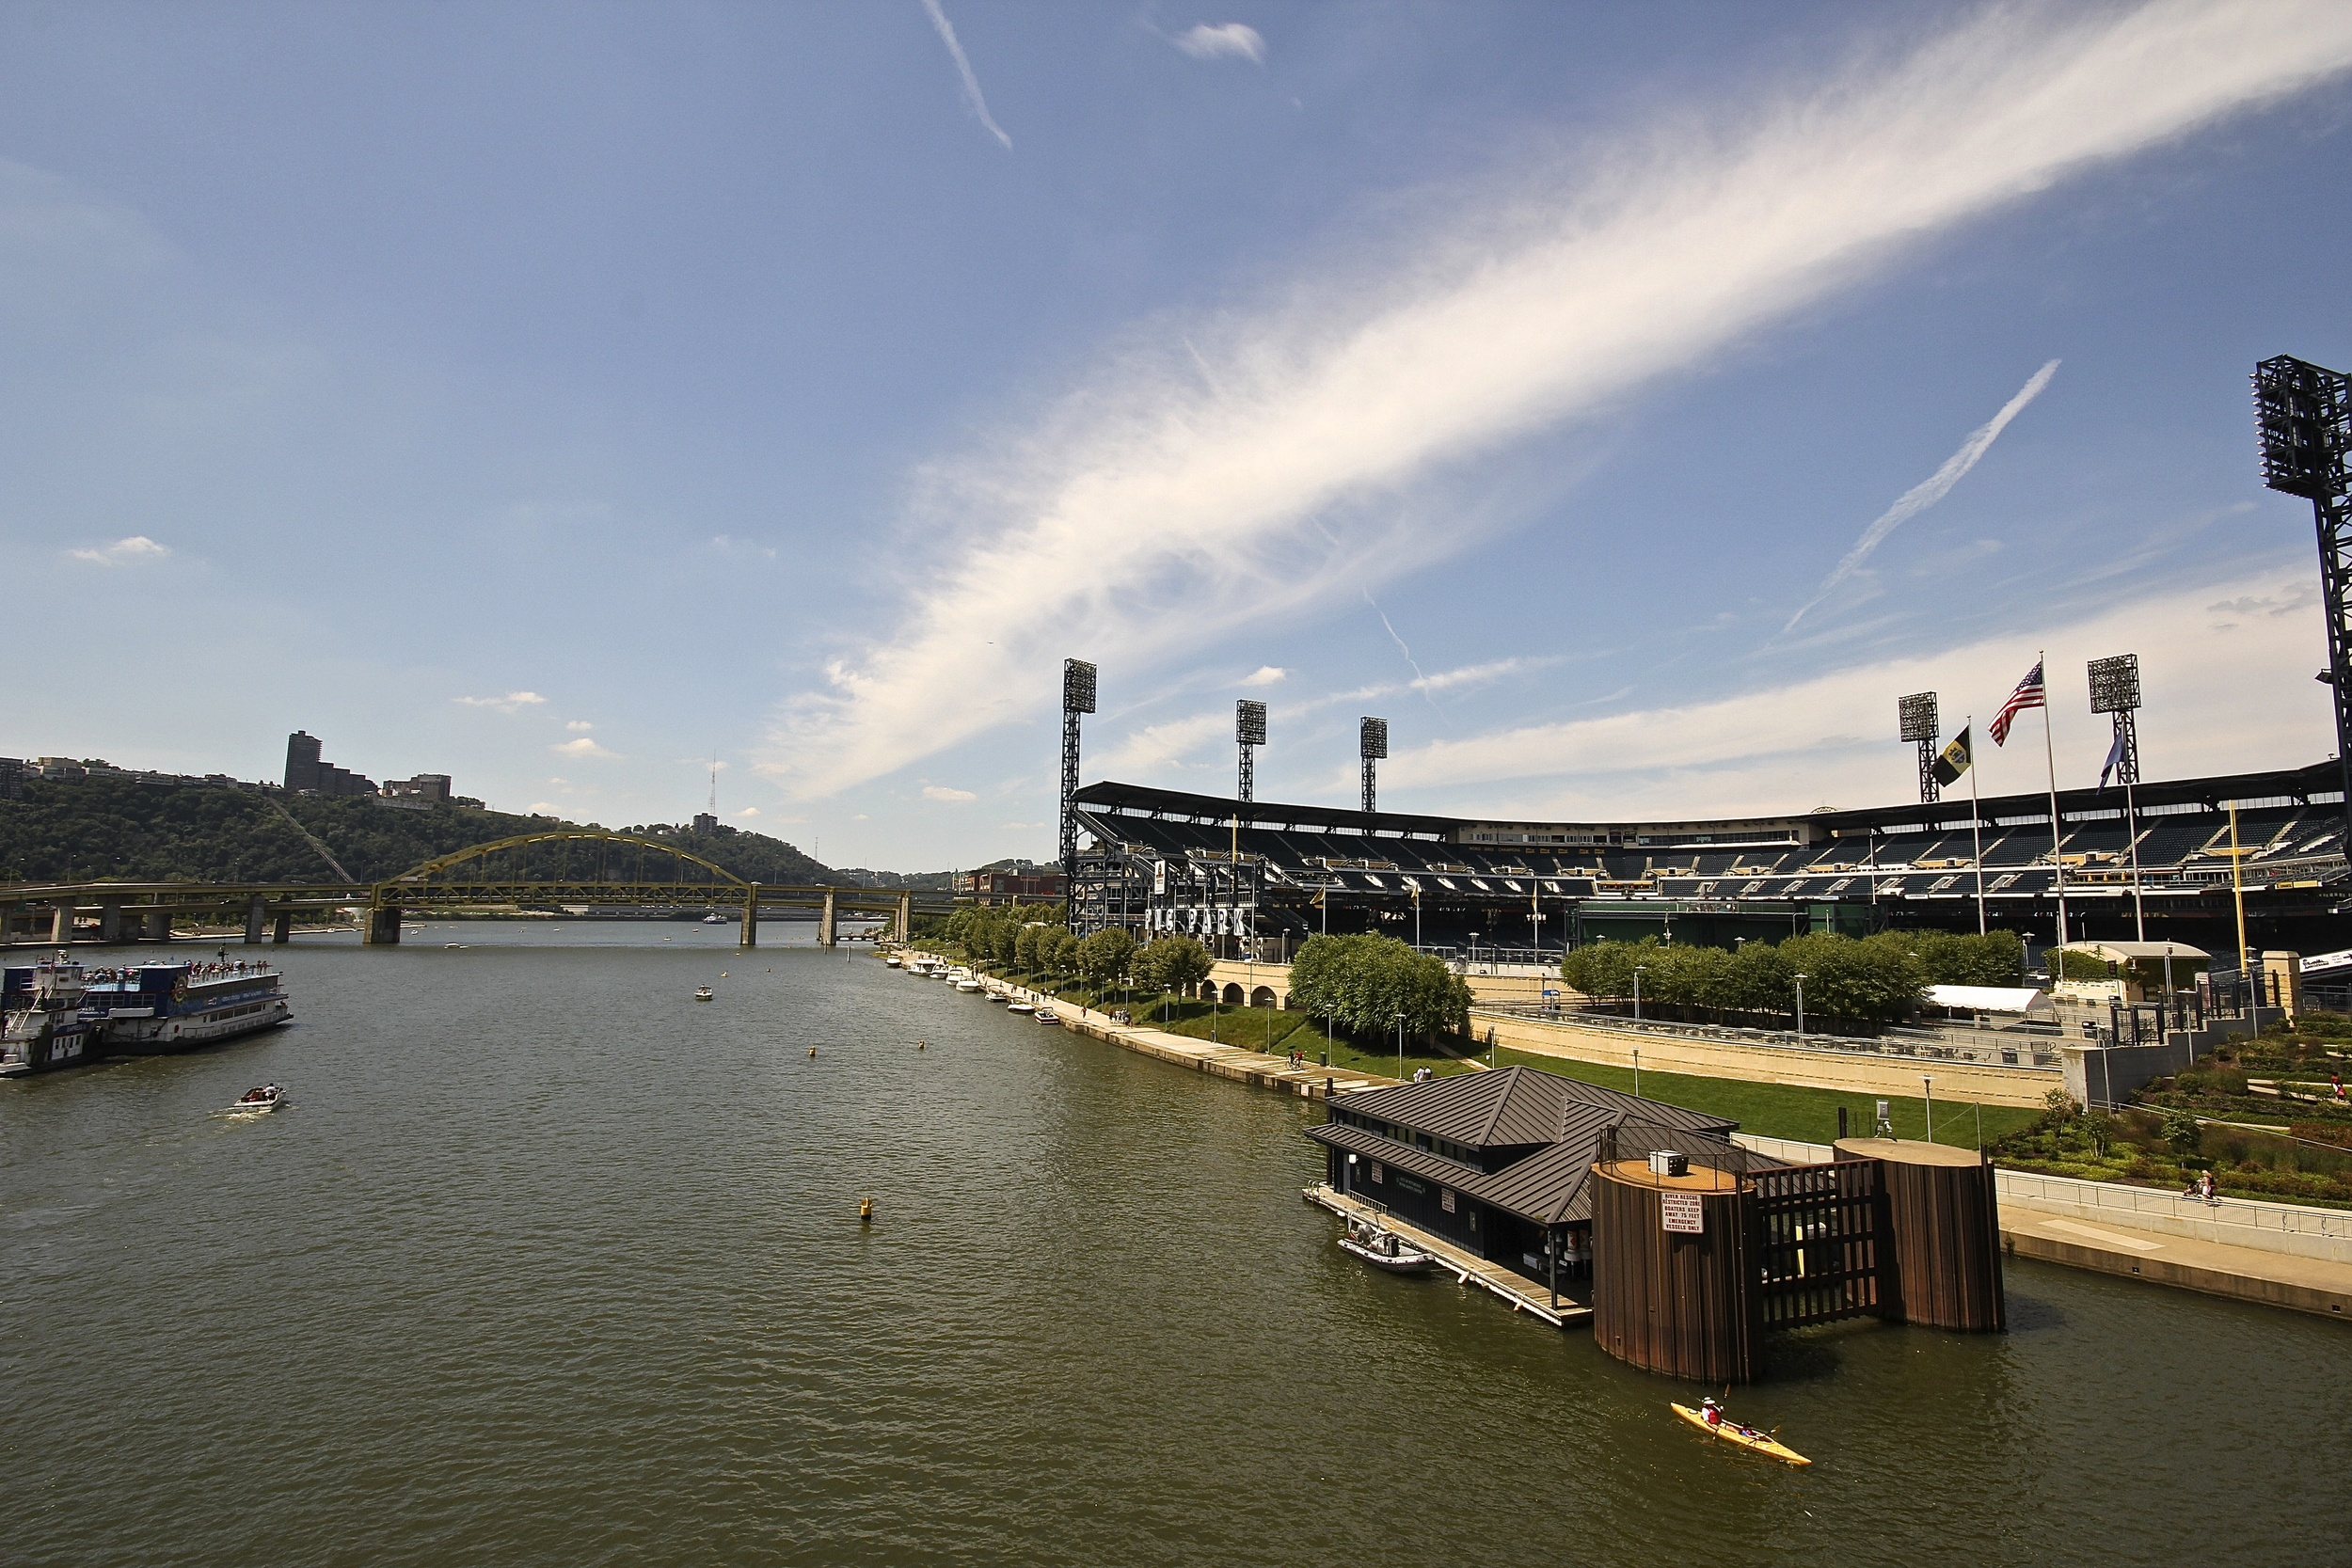 Another view from the Clemente Bridge